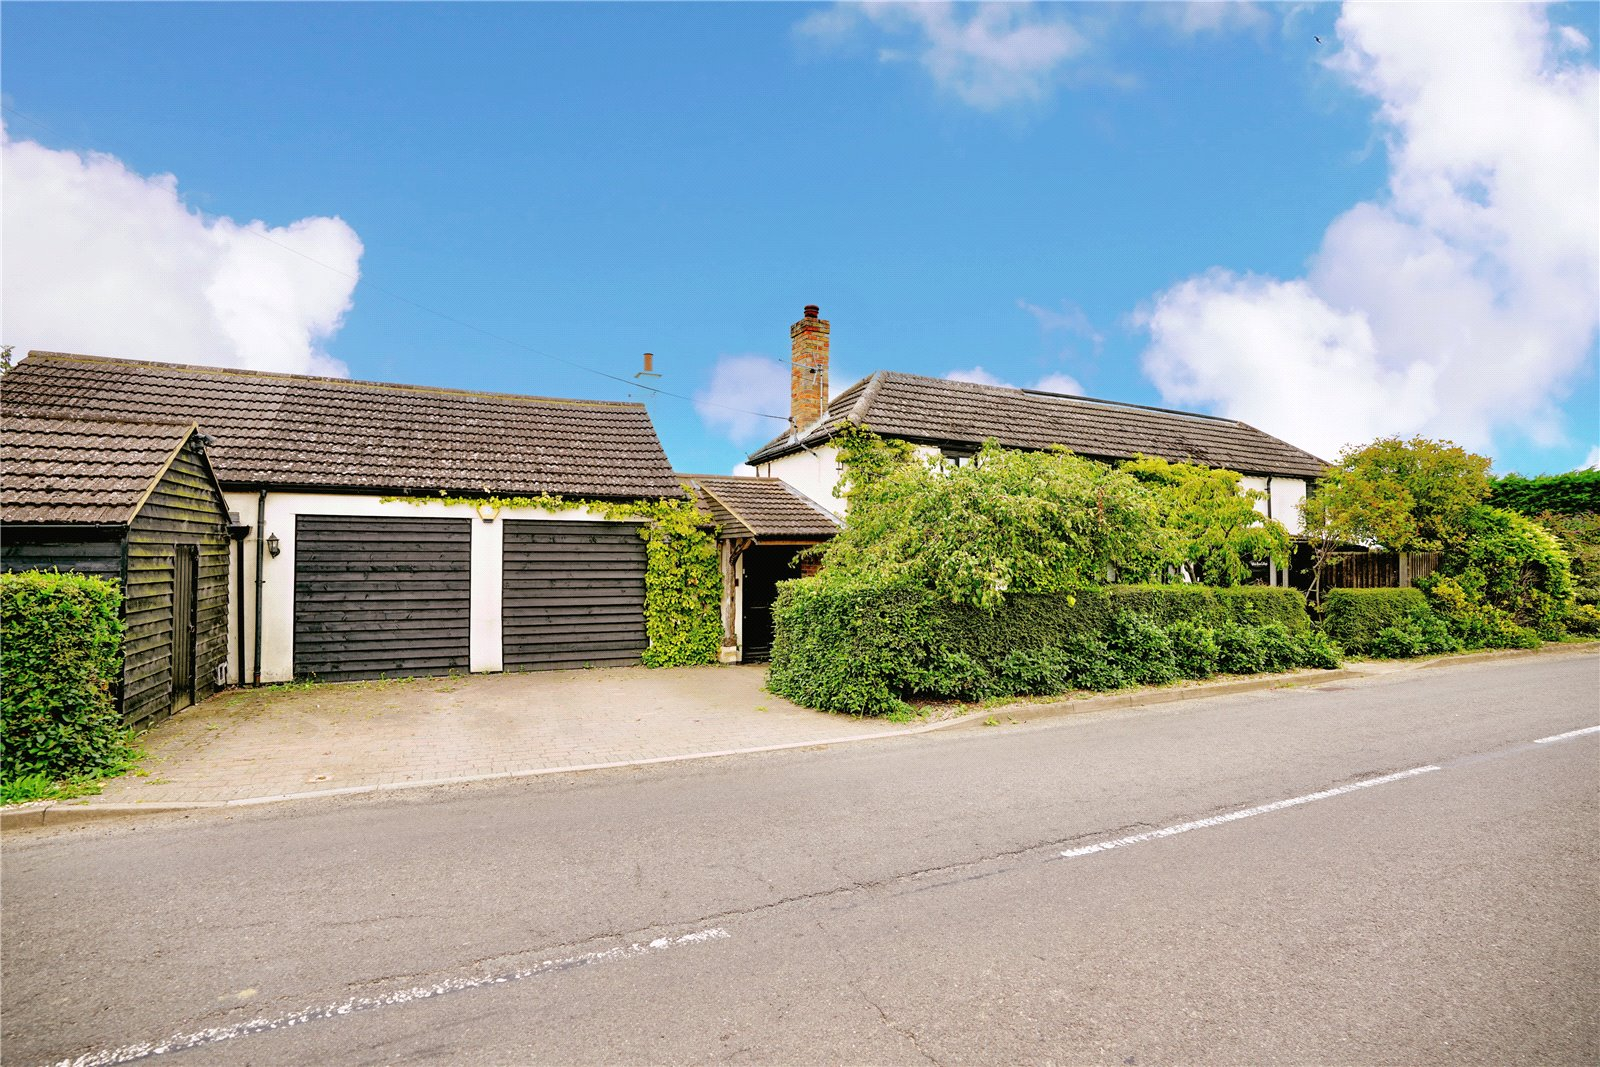 5 bed house for sale in Colmworth Road, Little Staughton  - Property Image 1